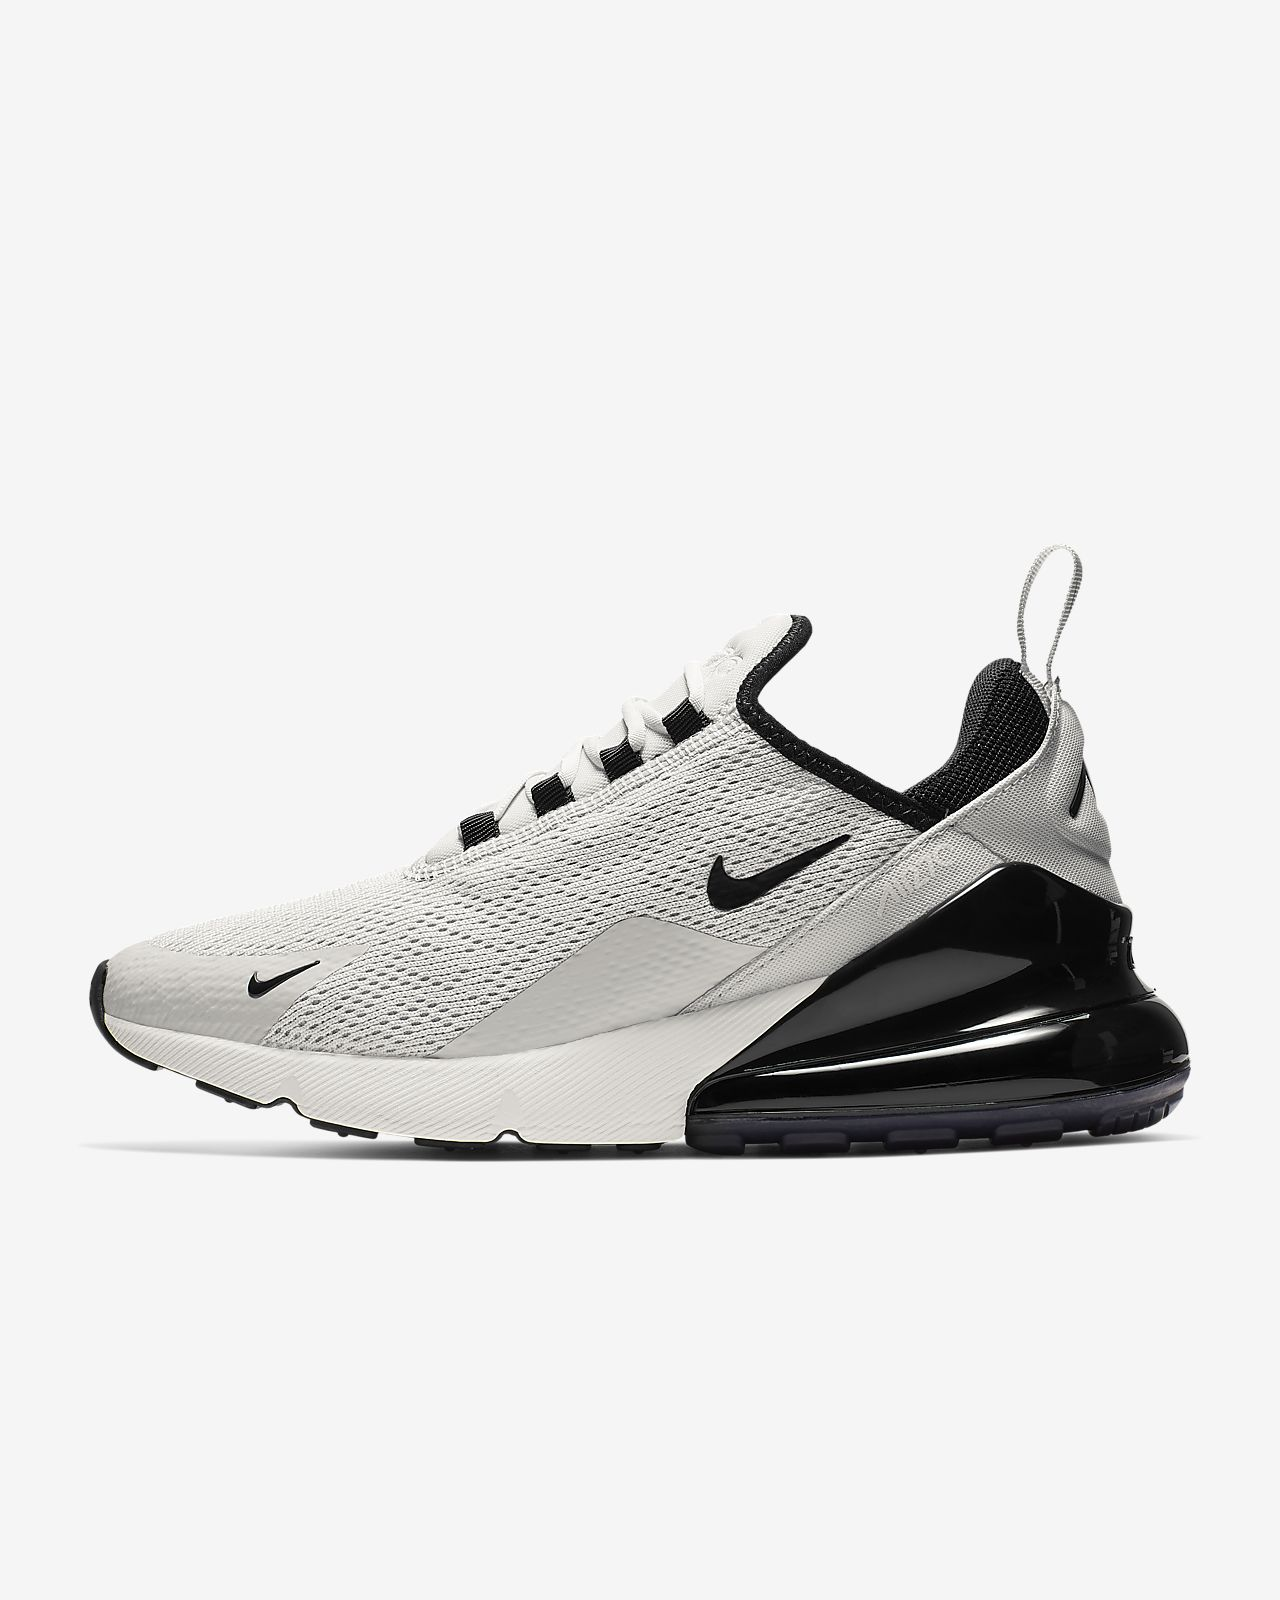 ba4ddc72867c Nike Air Max 270 Women s Shoe. Nike.com GB